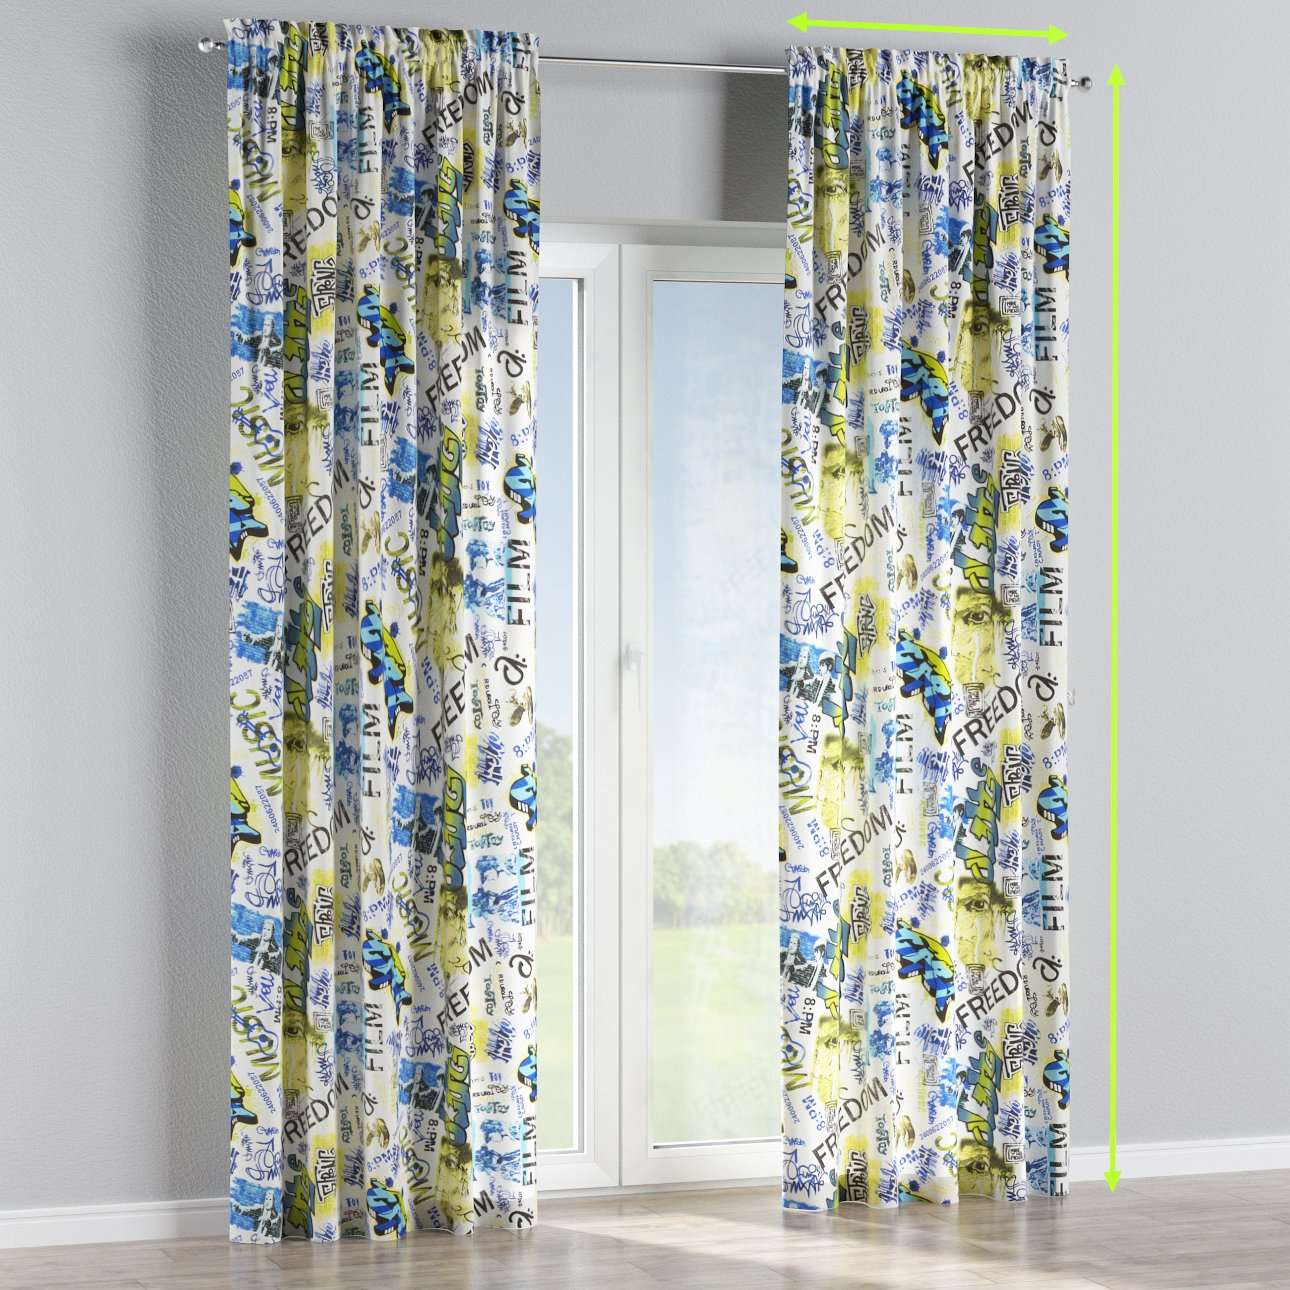 Slot and frill curtains in collection Freestyle, fabric: 135-08